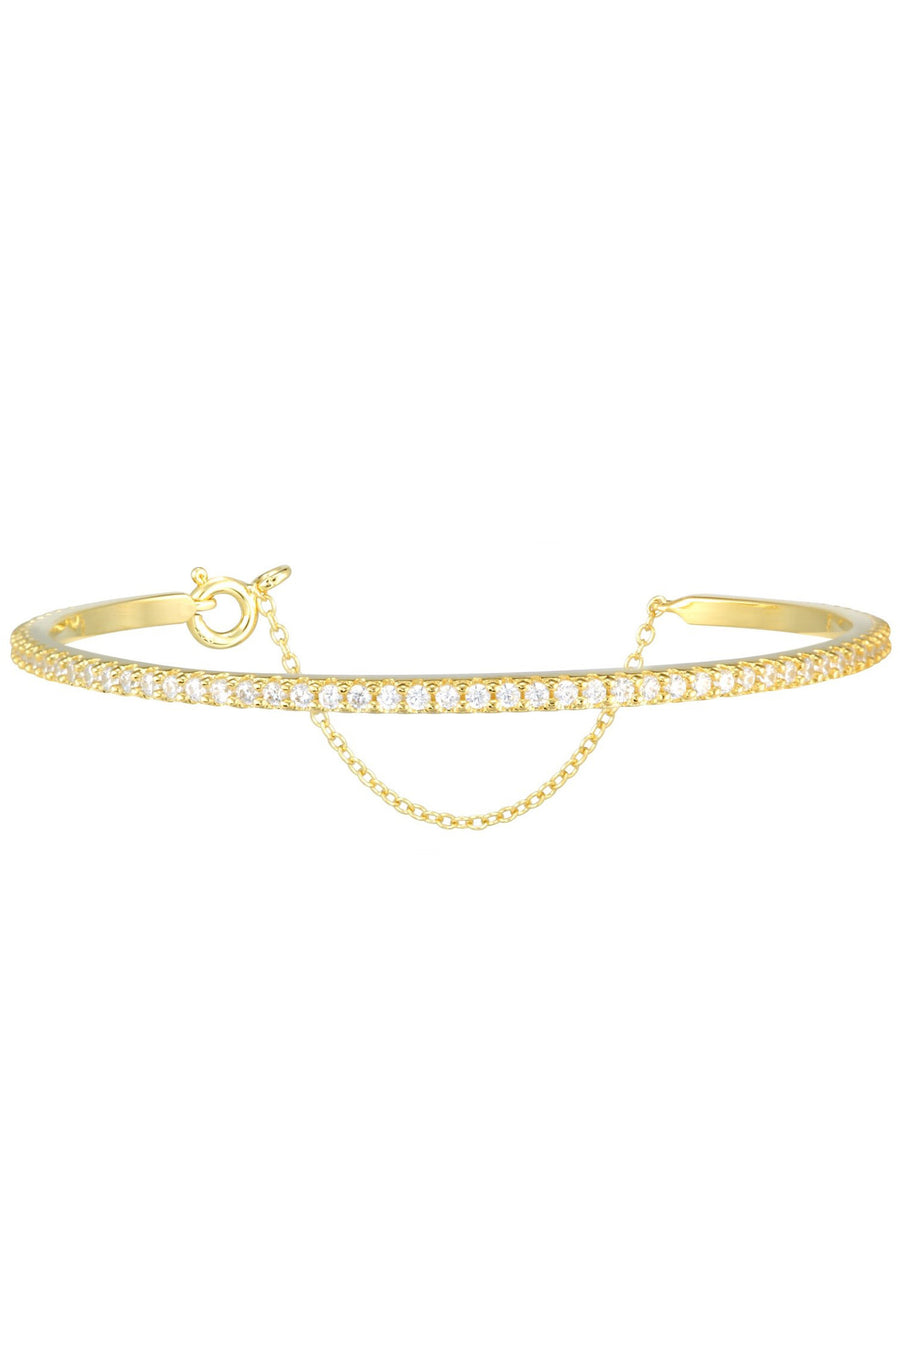 Layla Bangle in Gold - HER Empire Fashion Boutique Terrigal & Online